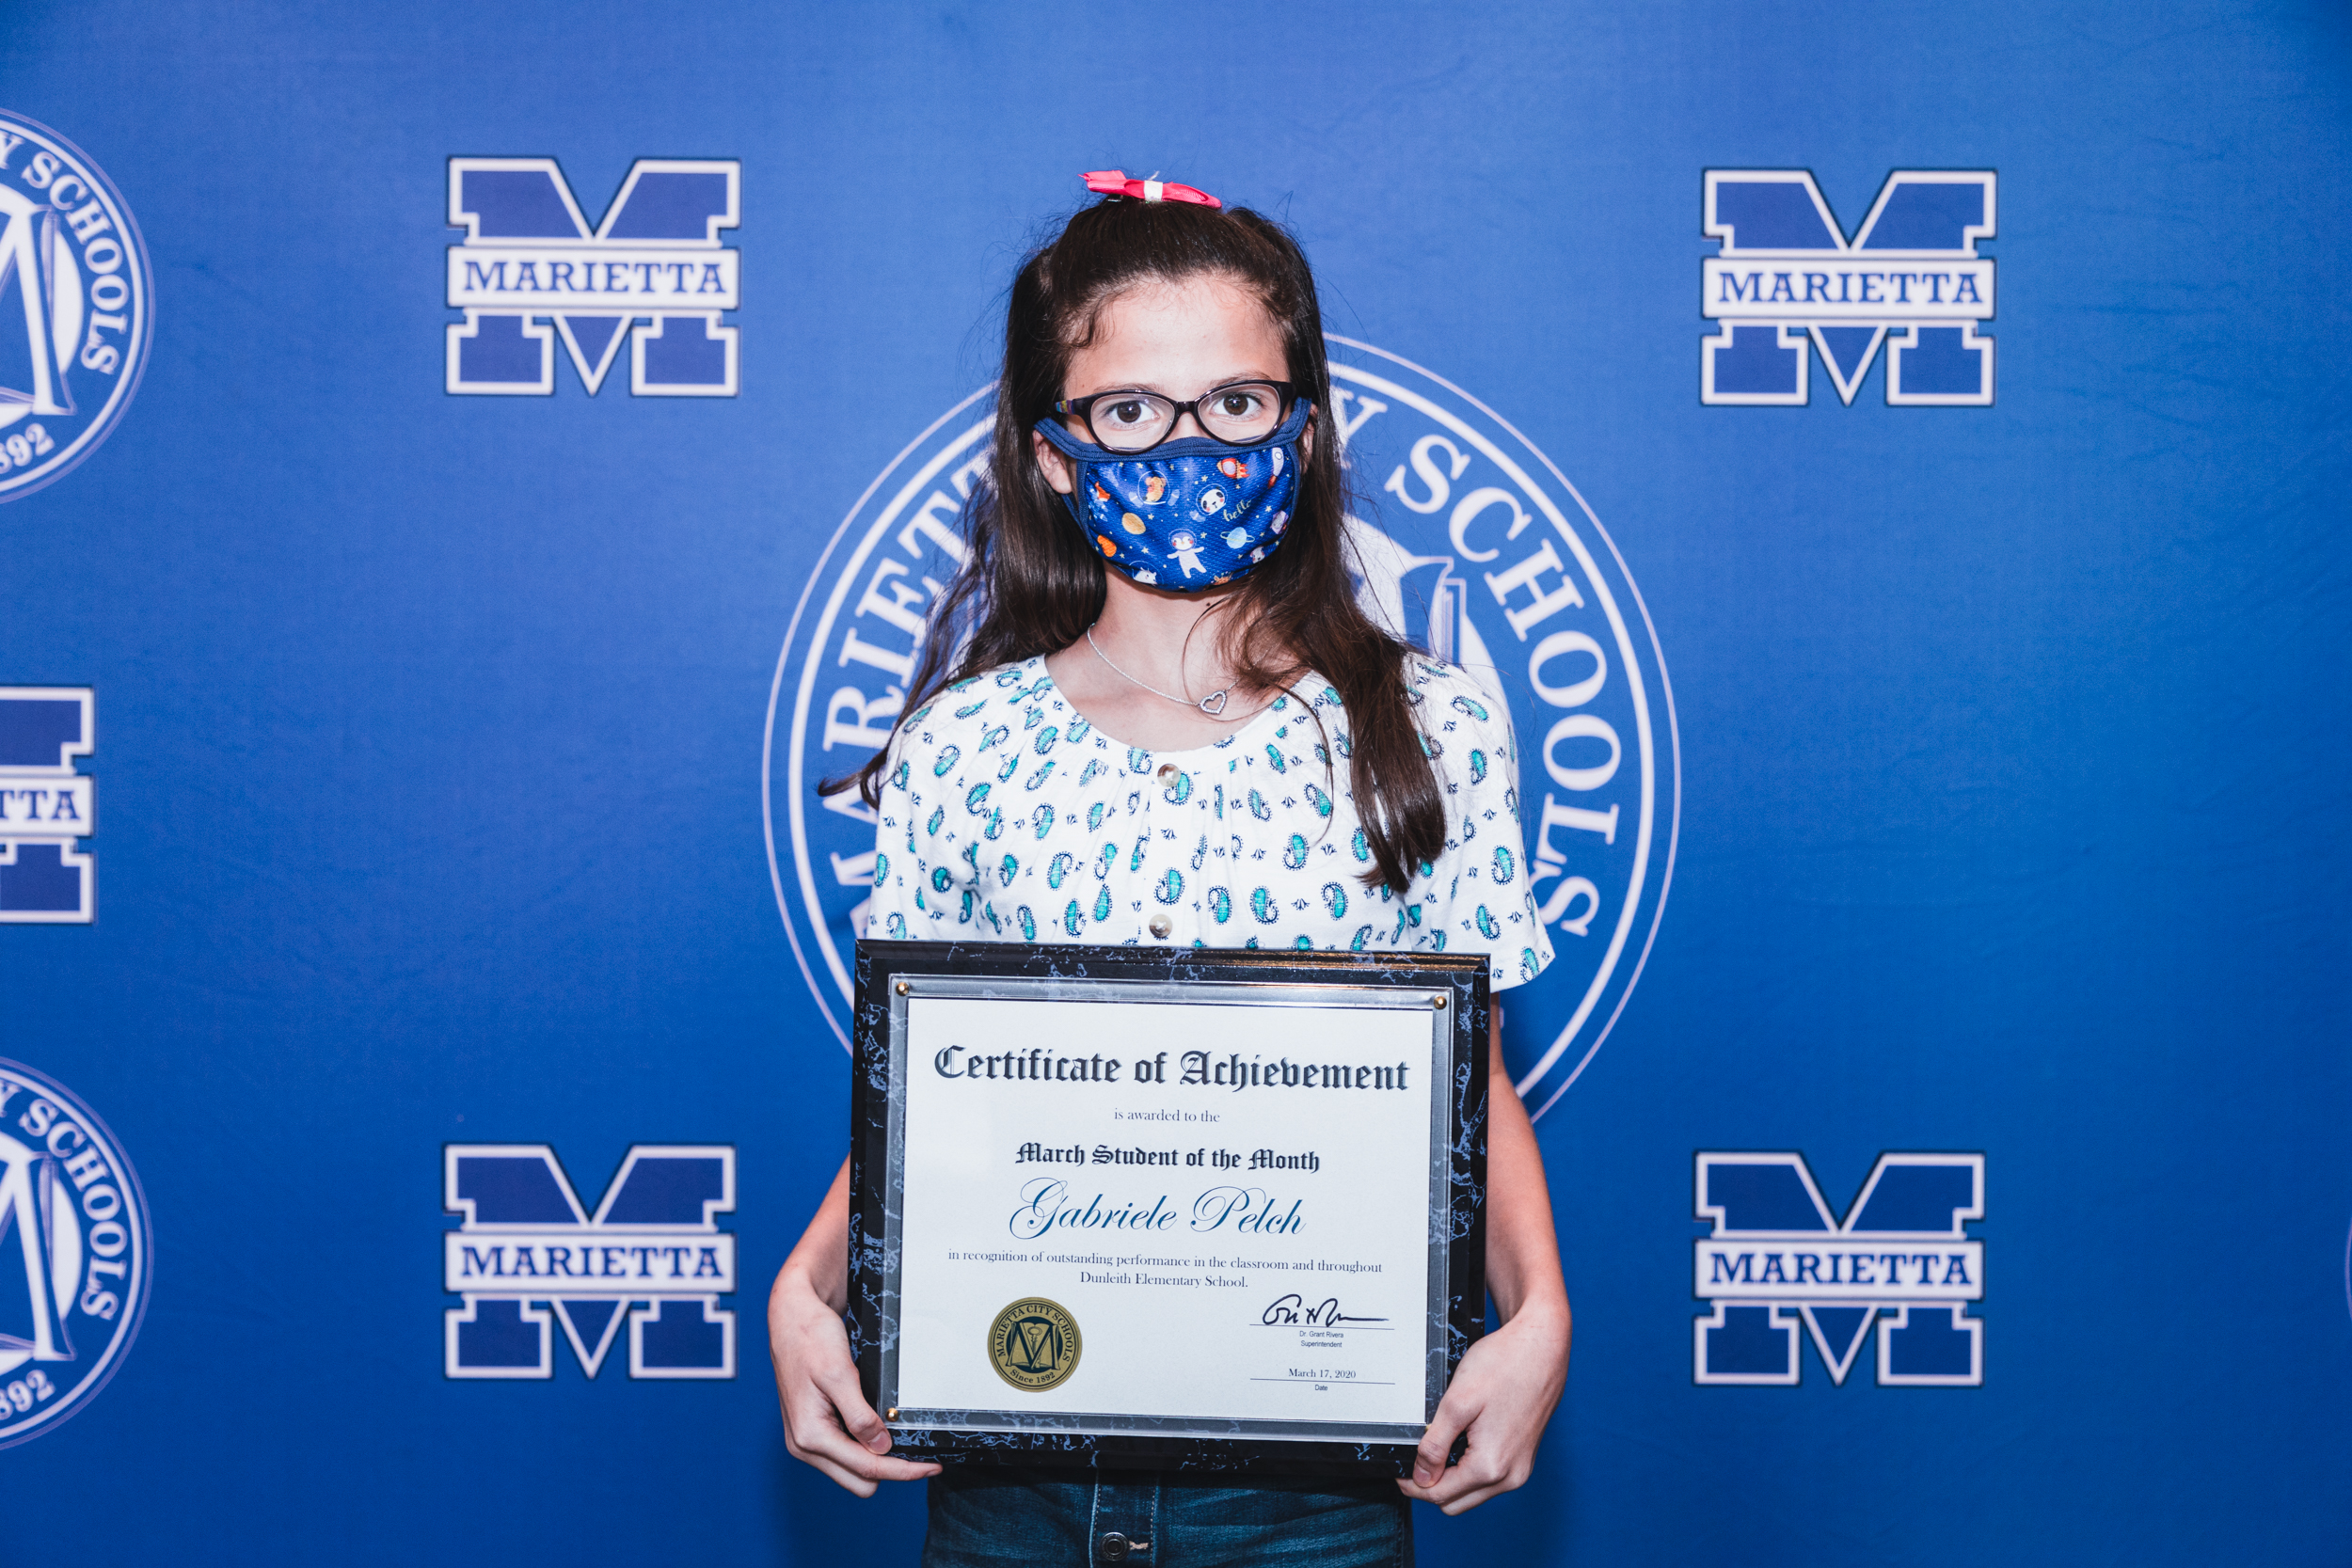 Gabriele Pelch: March Student of the Month